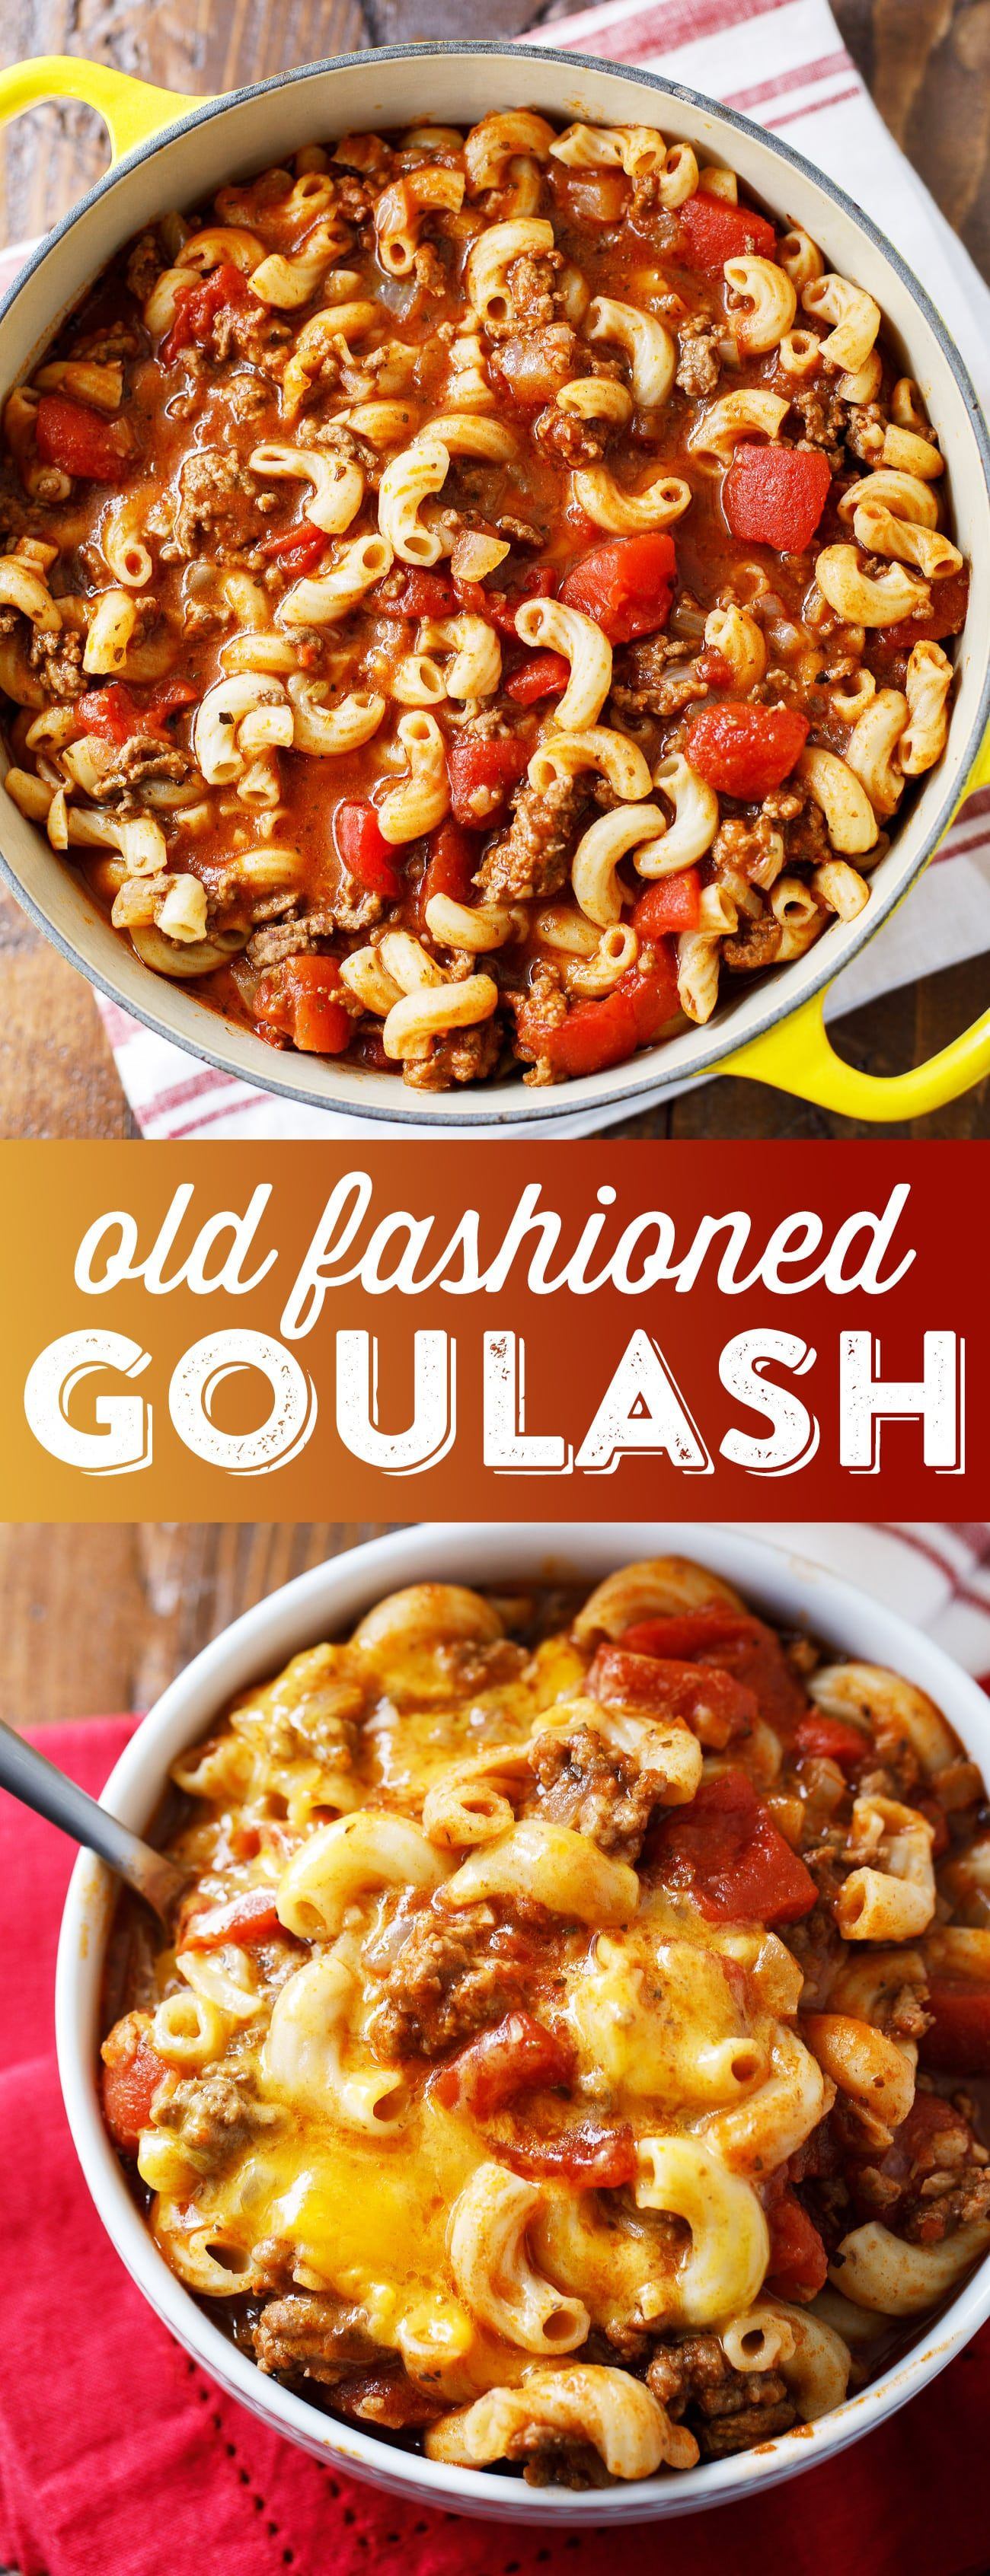 Old Fashioned Goulash Recipe - Johnny Marzetti Recipe images